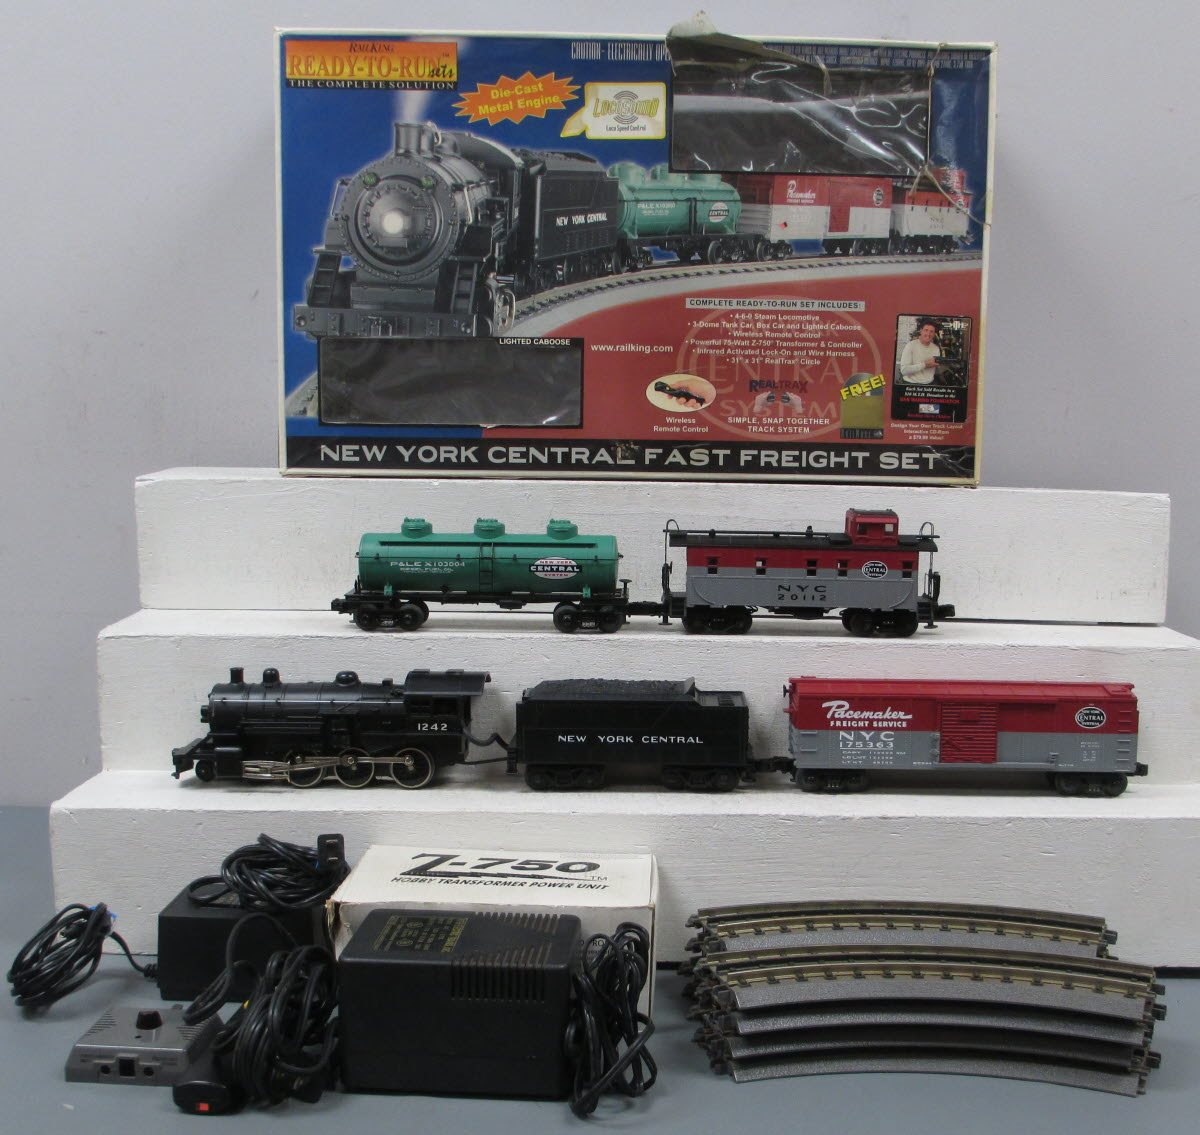 Rtr 3 Wire Harness Buy Mth 30 4046 1 Nyc 4 6 0 Steam R T Train Set W Ps2 Box Trainz Photo From Seller